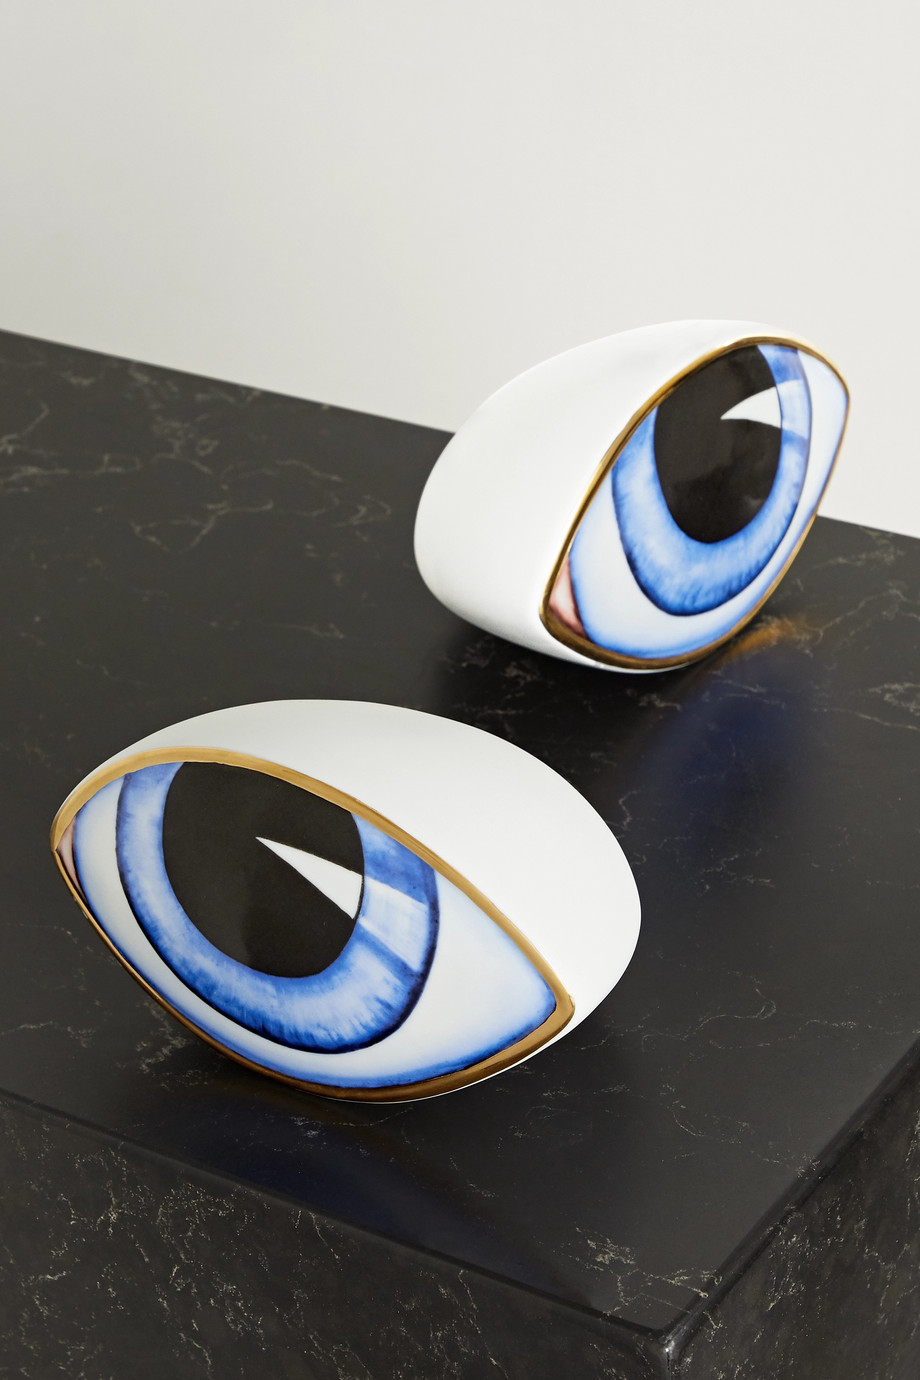 L'Objet + Lito gold-plated porcelain and resin paperweight